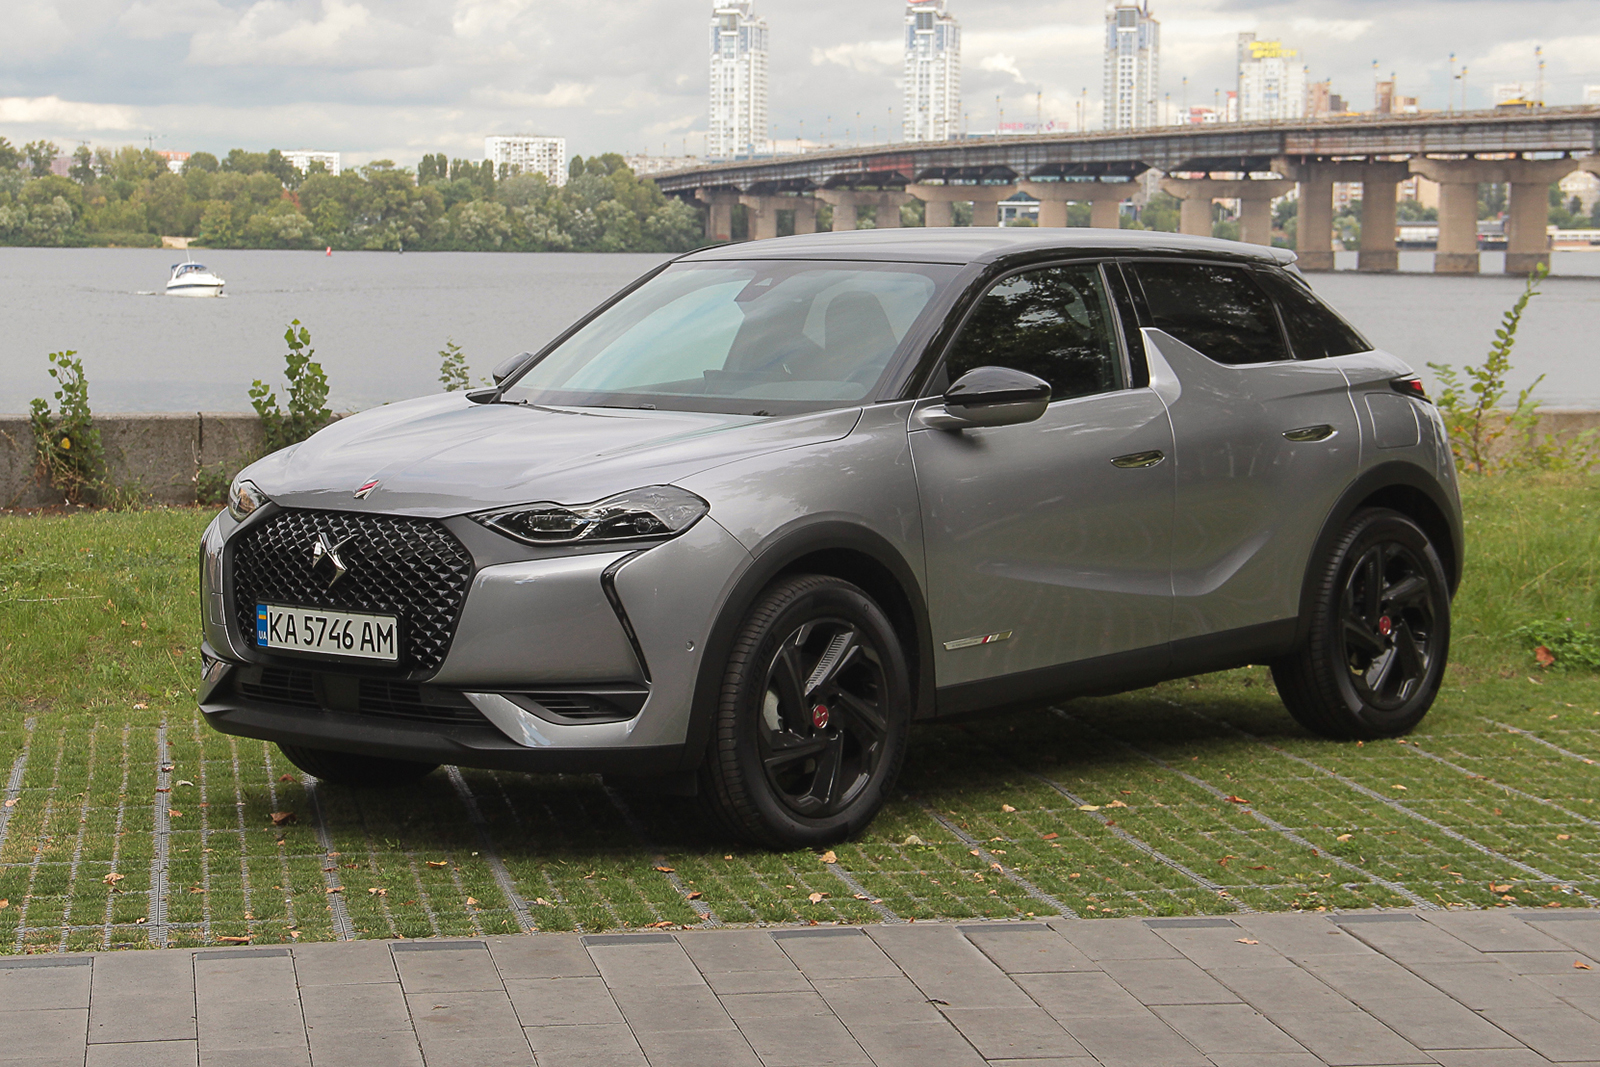 Тест-драйв DS 3 Crossback: большой оригинал в компактном формате (видео)